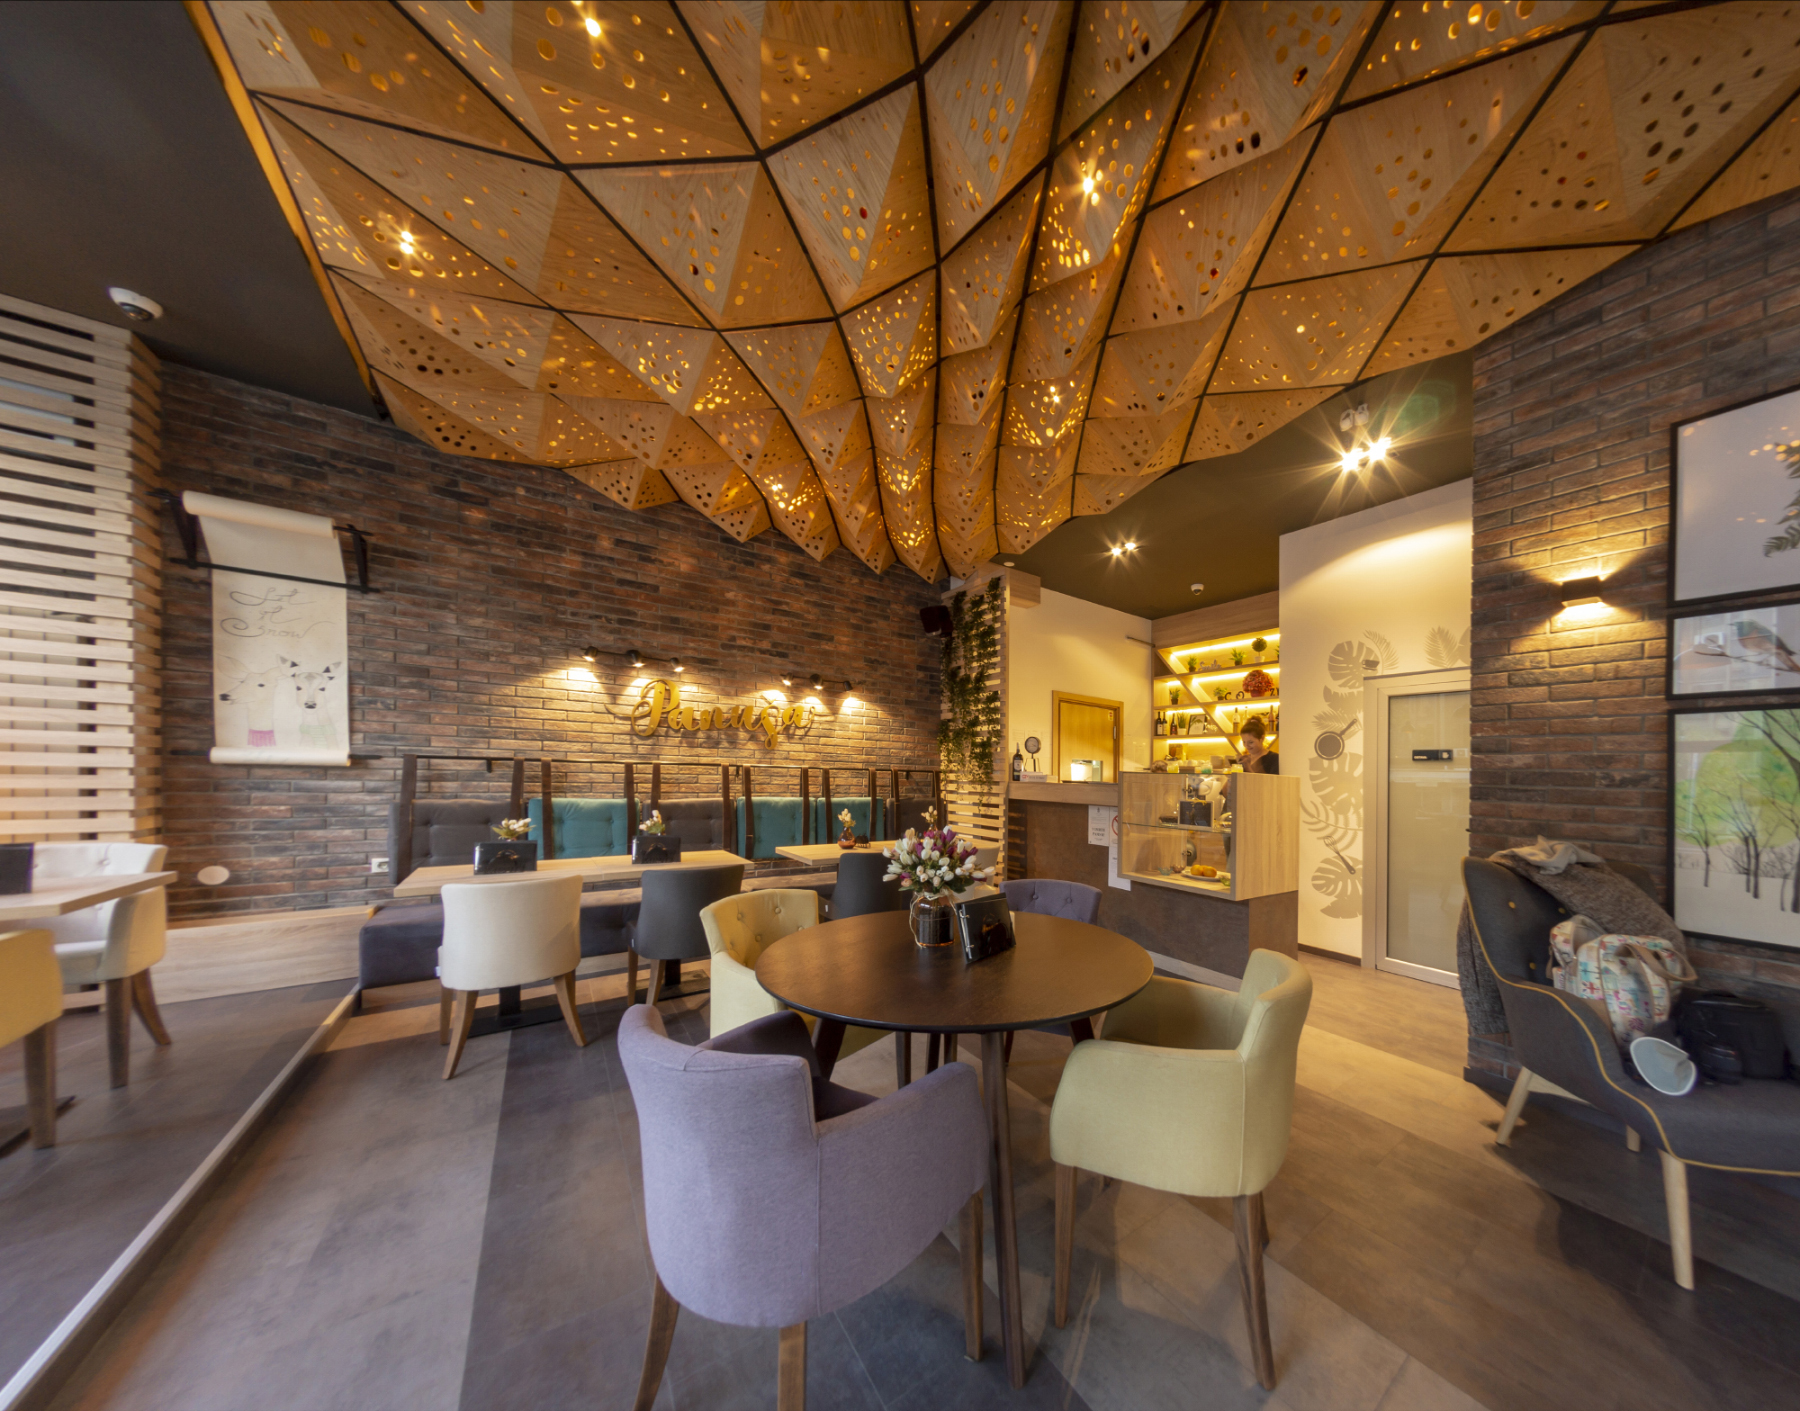 Parametric wooden ceiling